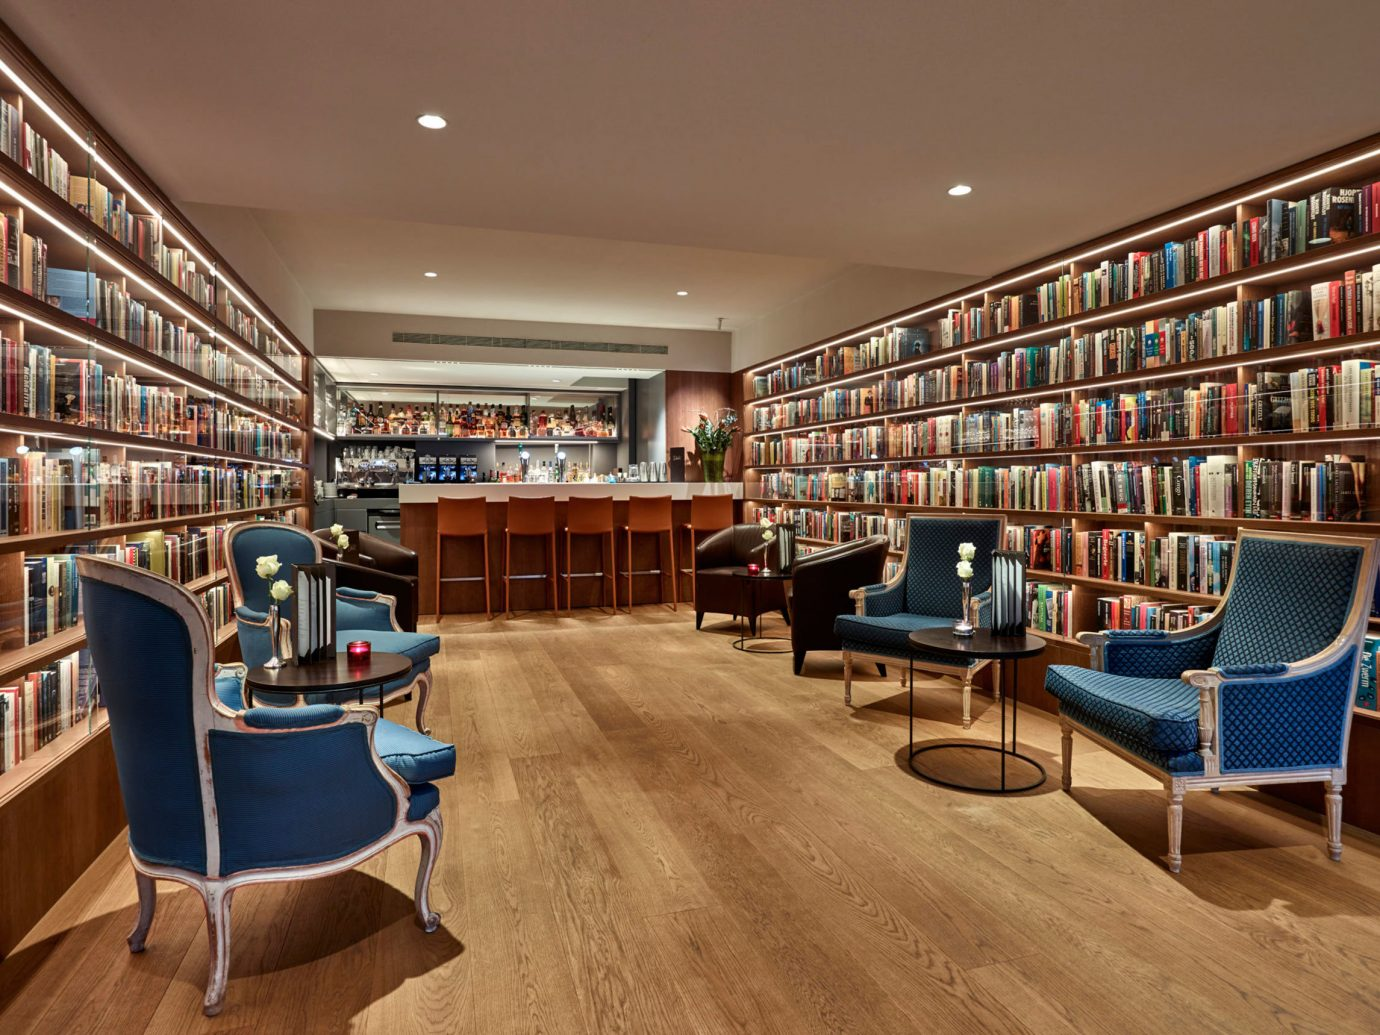 Hotels indoor ceiling library floor room public library scene Living building bookselling retail interior design furniture real estate